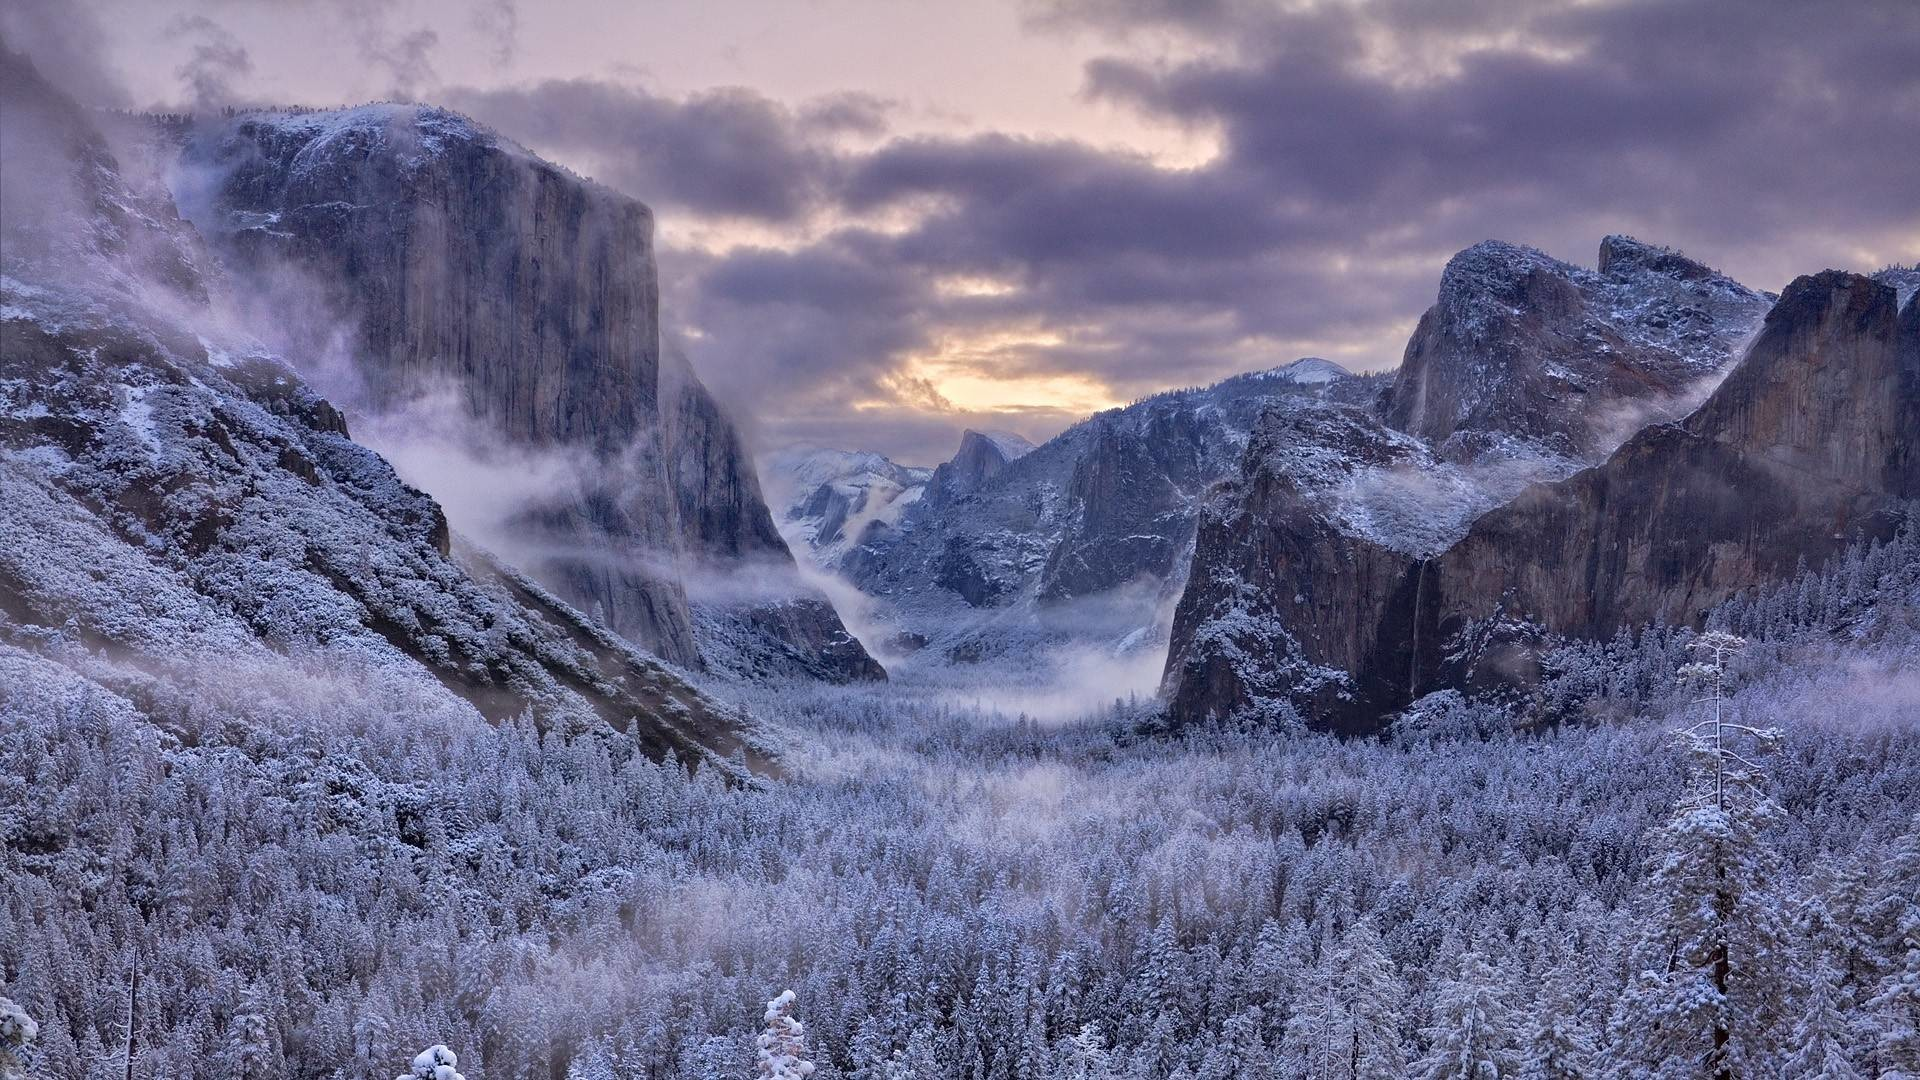 1920x1080 Best Dowload Yosemite Wallpaper HD.